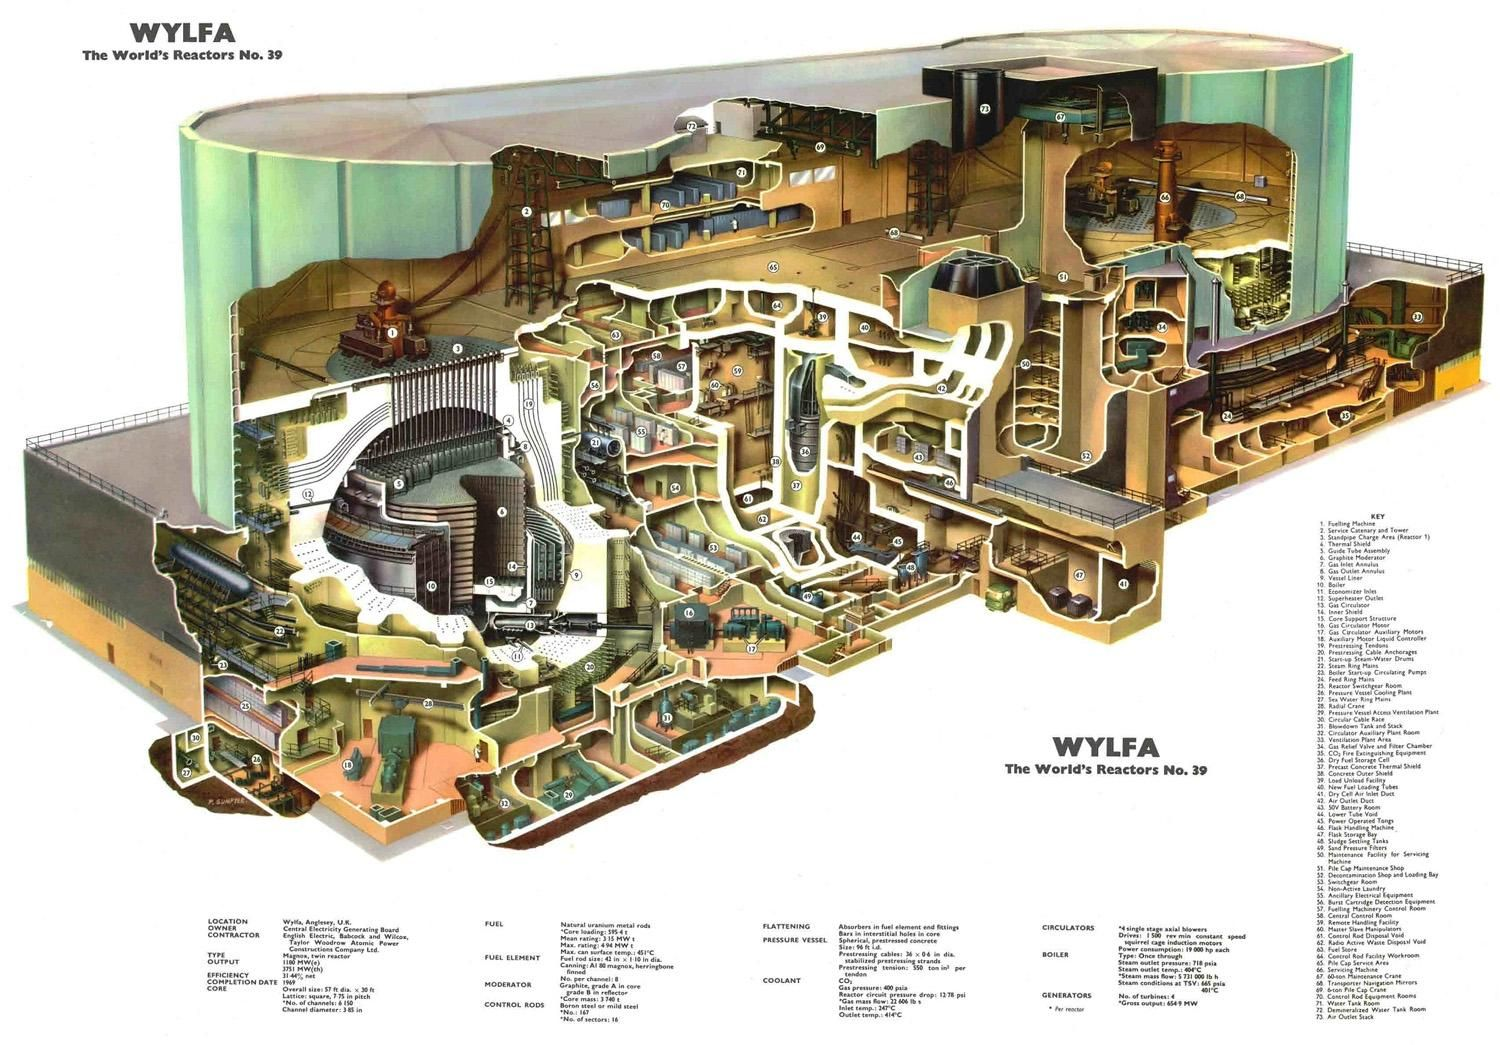 Cutaway Diagram Of The Wyfla Nuclear Power Station